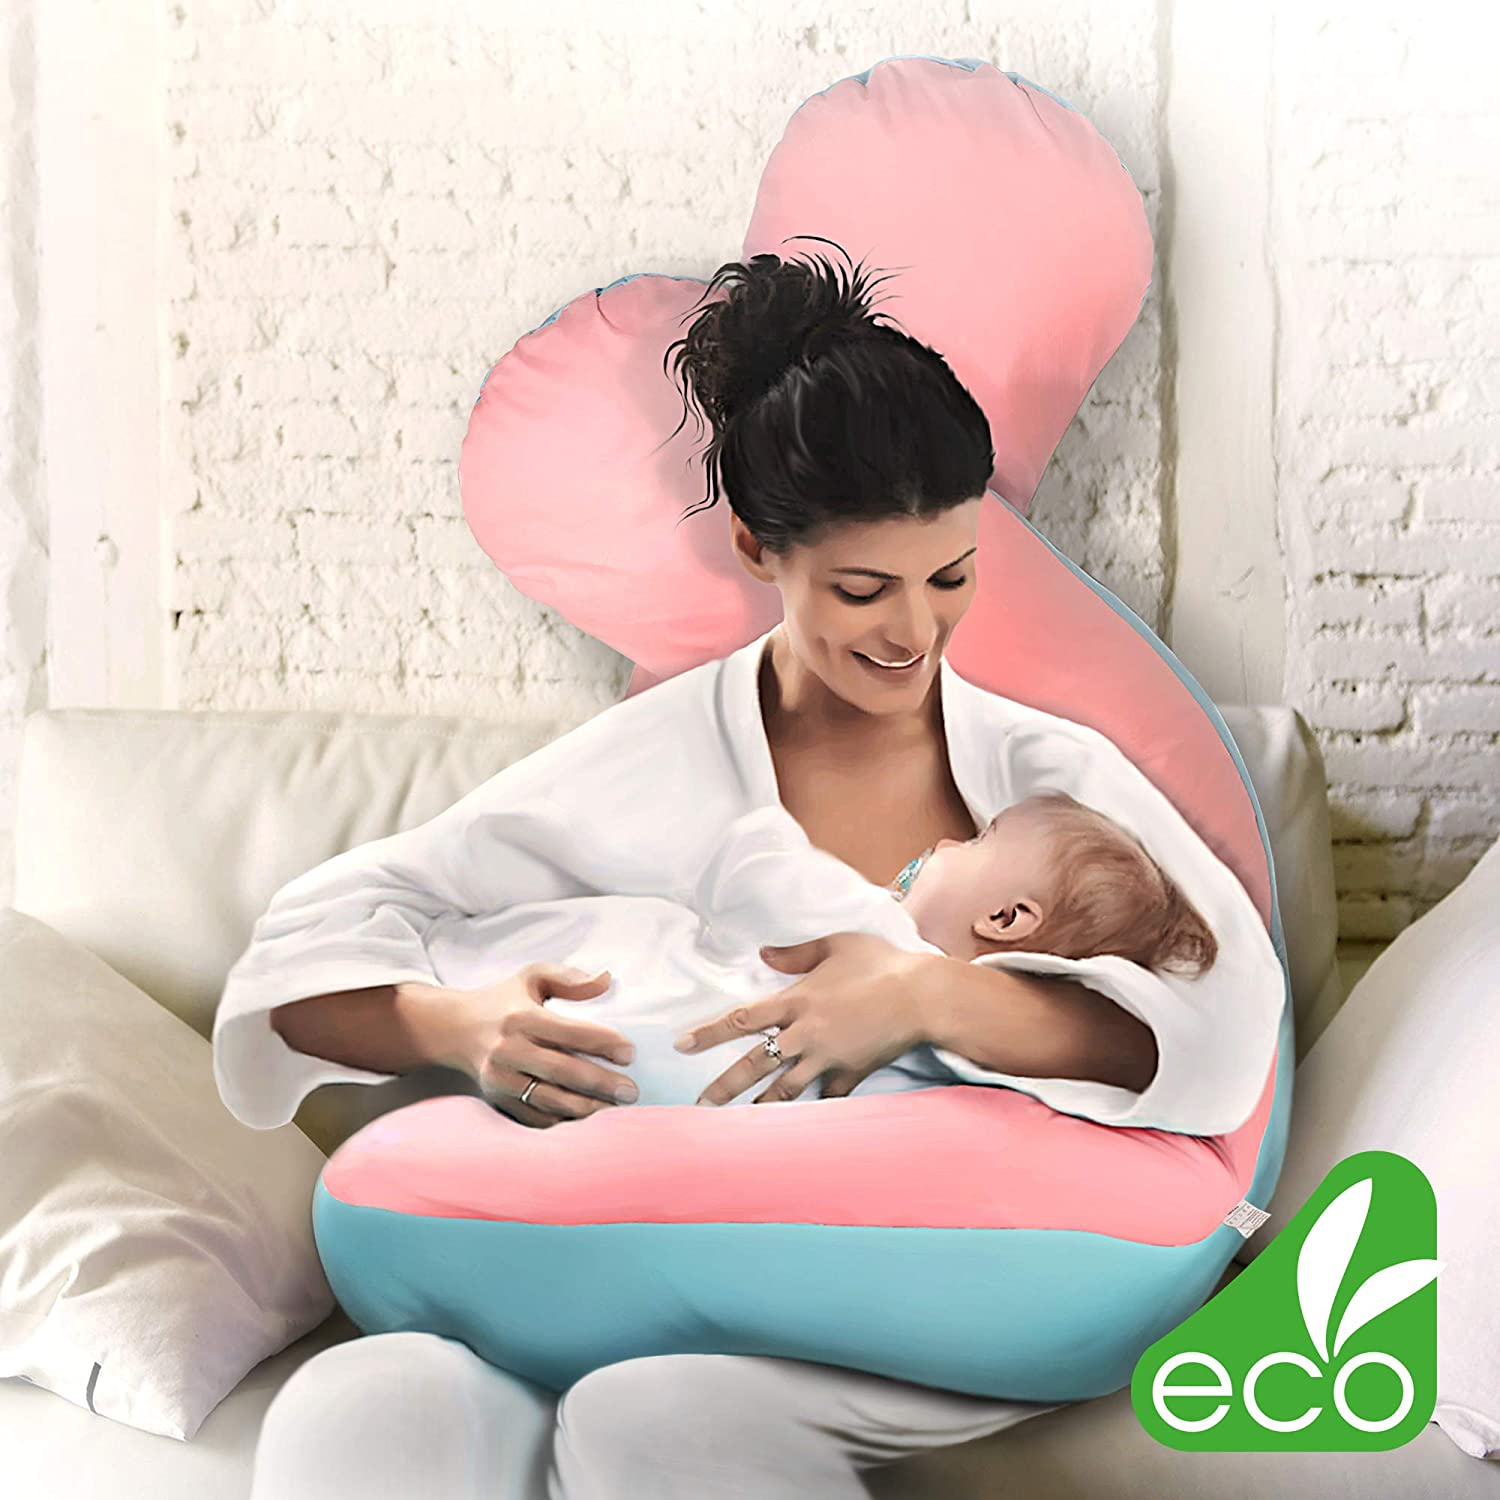 Large Pregnancy Pillow for Maternity Pink /& Blue IS U Shaped Pregnancy Pillow U Pregnancy Pillow Pregnancy Body Pillows